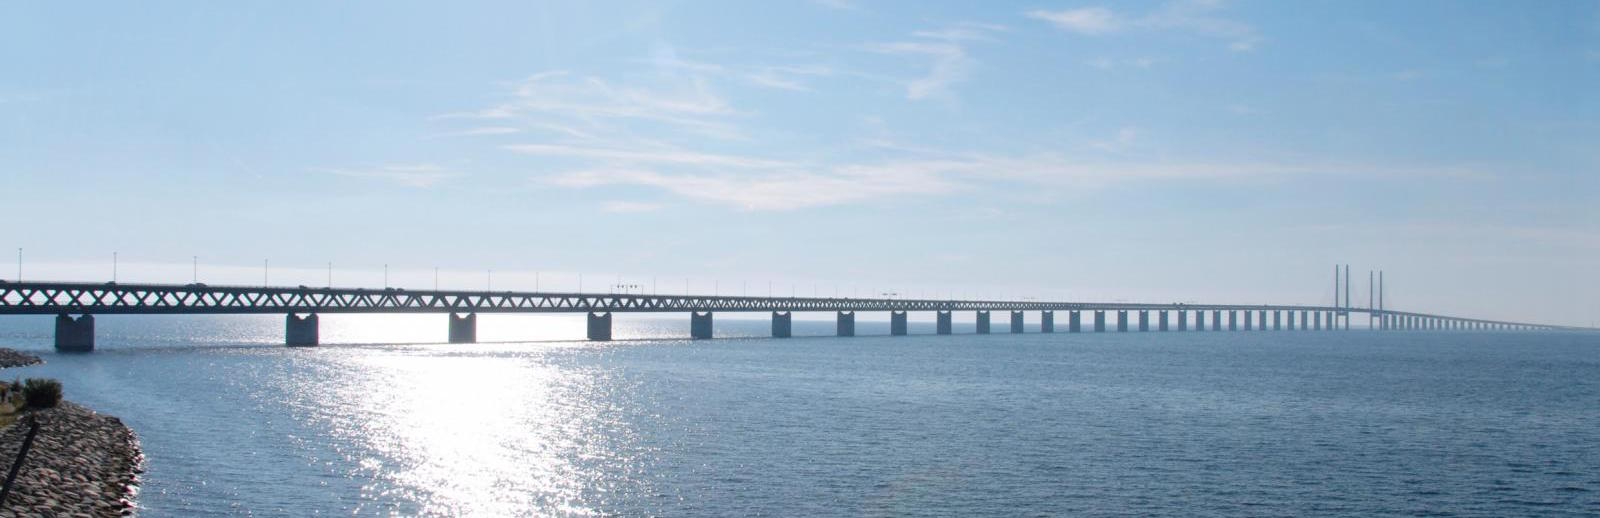 Oresund bridge connecting Sweden and Denmark